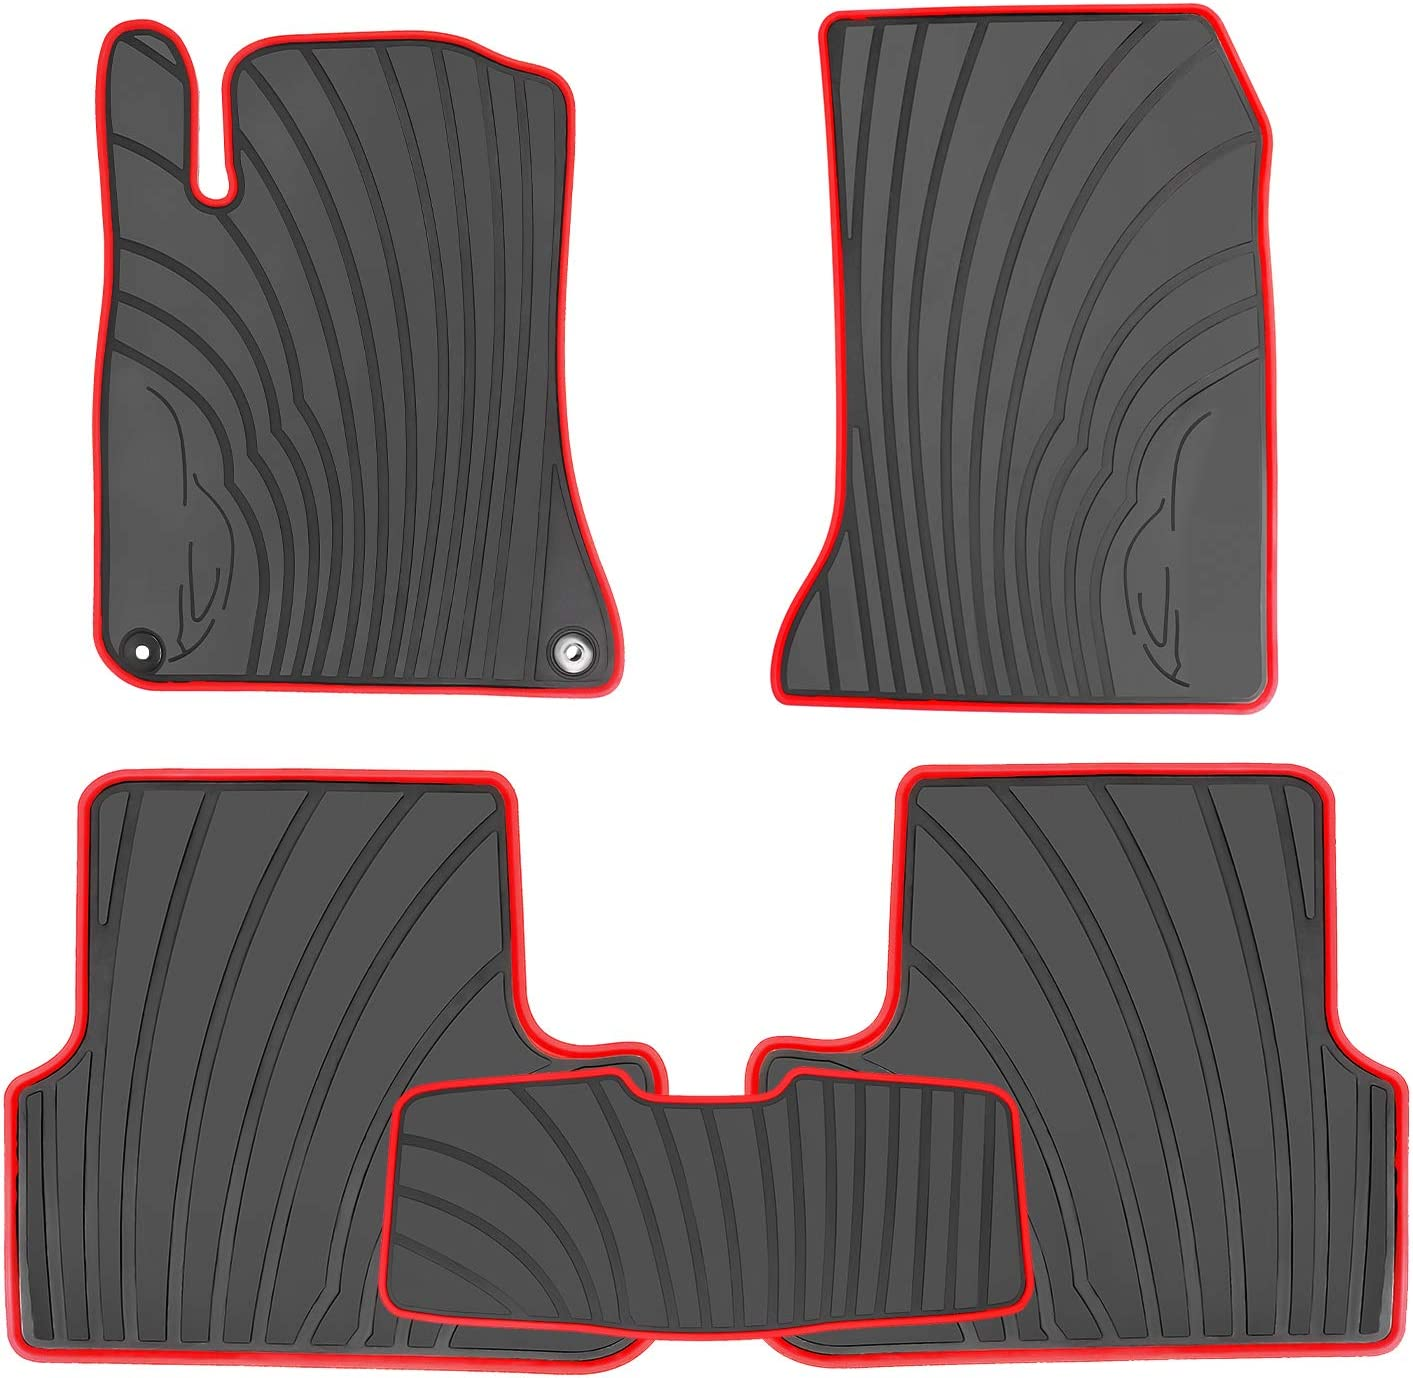 HD-Mart Cargo Liner Custom Fit for Mercedes Benz GLA 2014 2015 2016 2017 2018 2019 2020 Rubber Trunk Mats All Weather Protector Waterproof Heavy Duty Odorless Black and Red for GLA250 GLA45 GLA Class